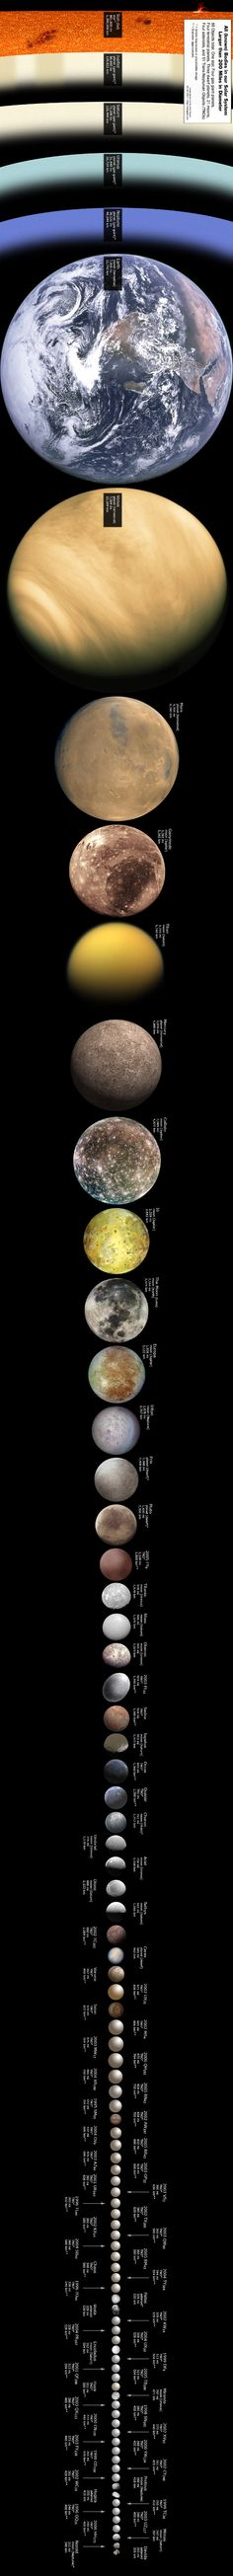 solar-system-by-size